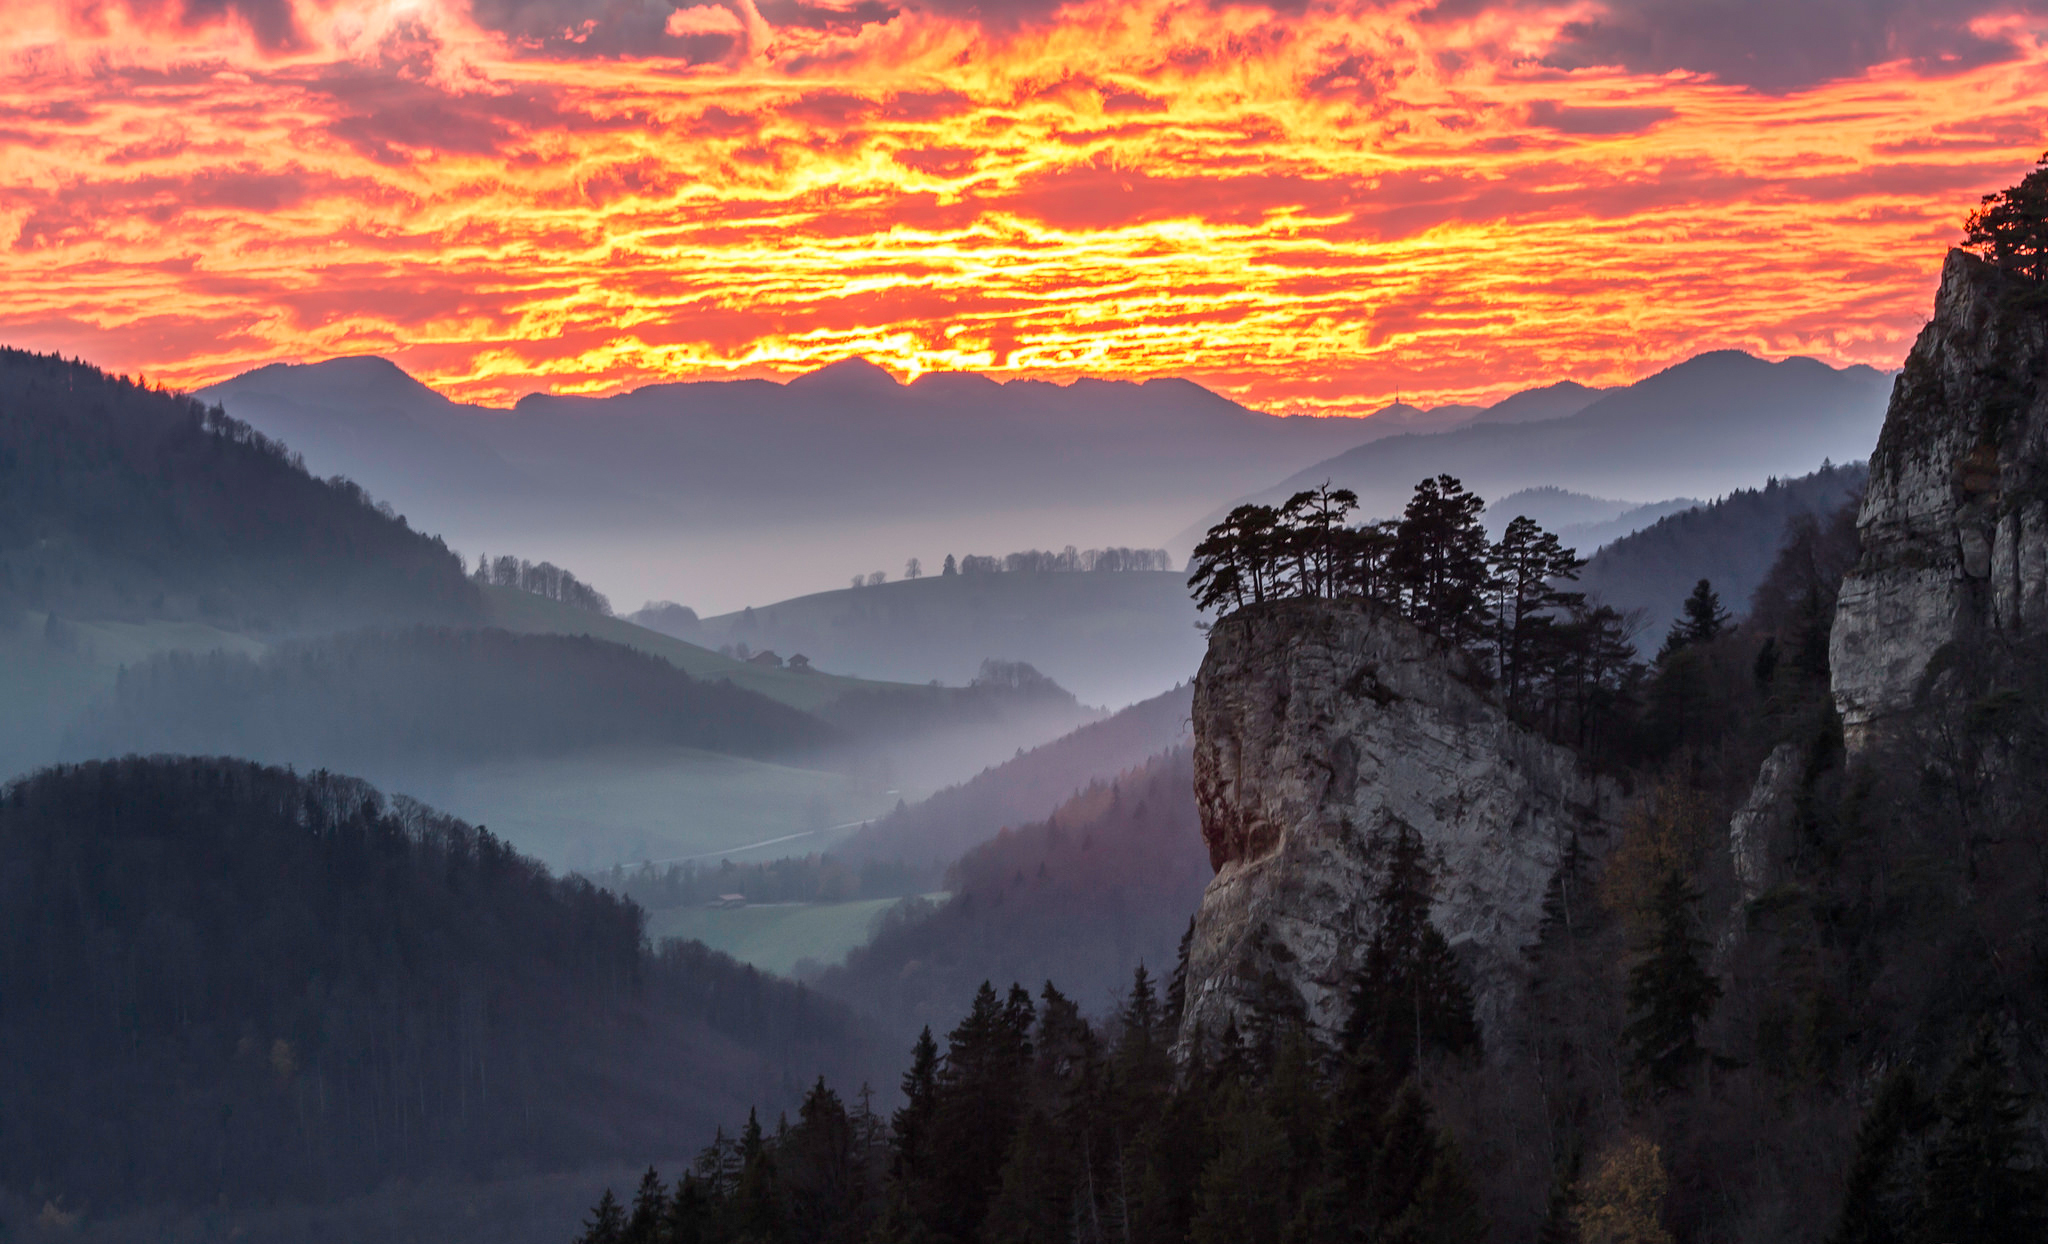 145235 free wallpaper 480x800 for phone, download images Nature, Sky, Mountains, Clouds, Dawn, Fog 480x800 for mobile